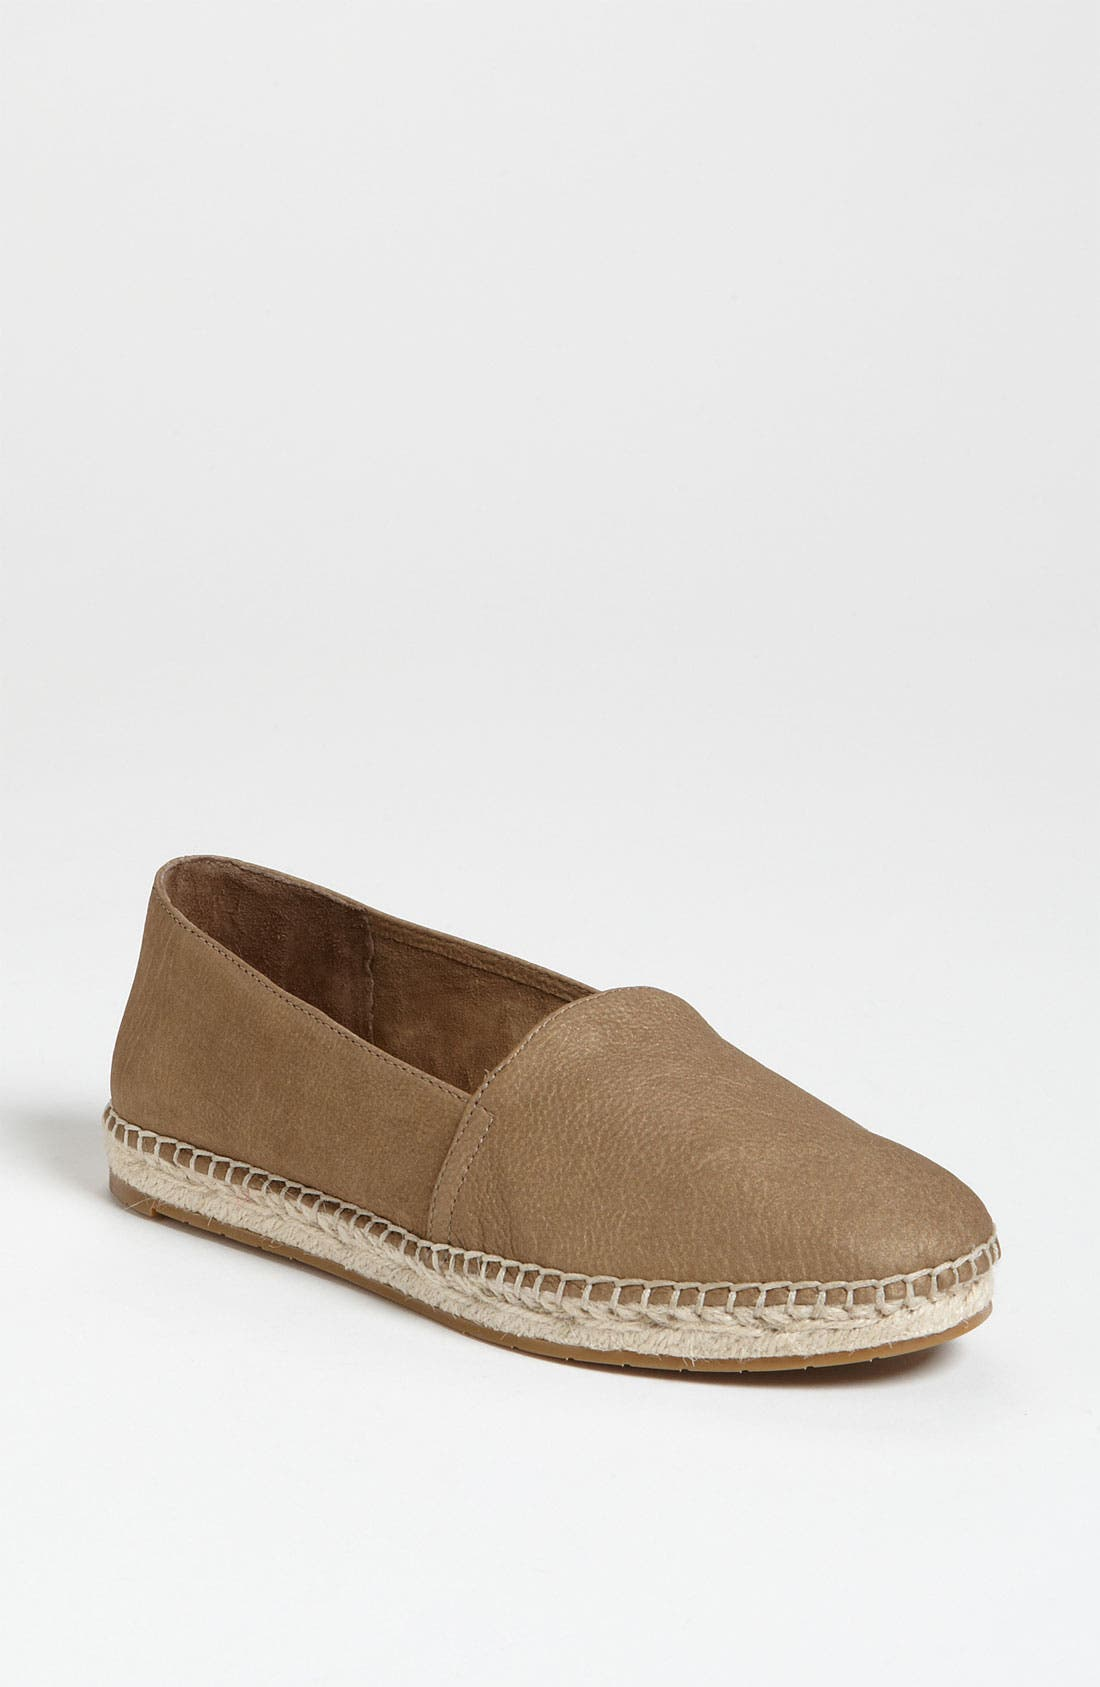 Main Image - Eileen Fisher 'Glide' Loafer